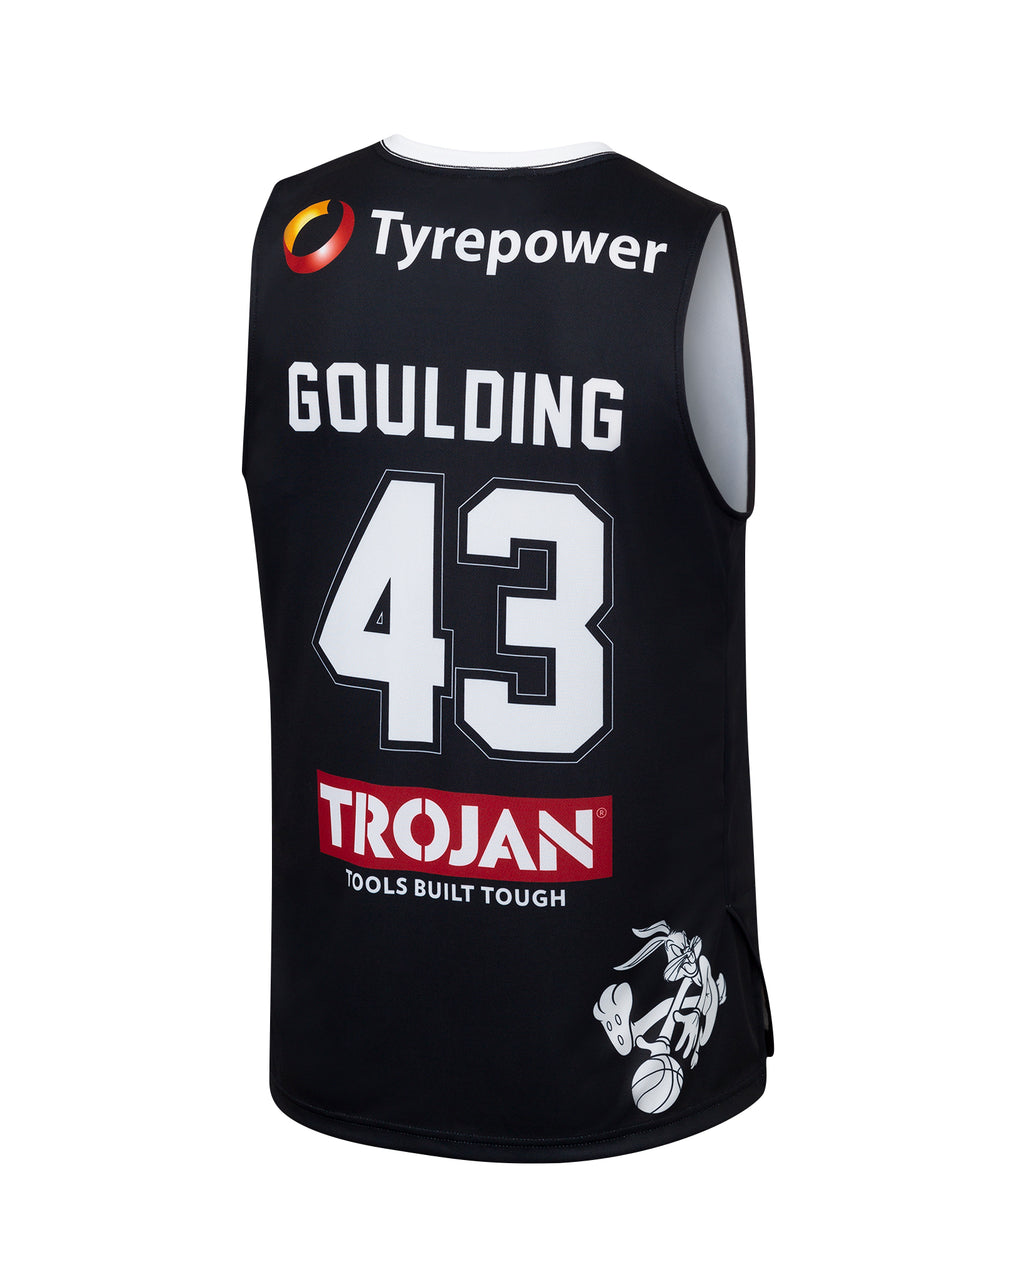 Melbourne United 19/20 Looney Tunes Jersey - Chris Goulding